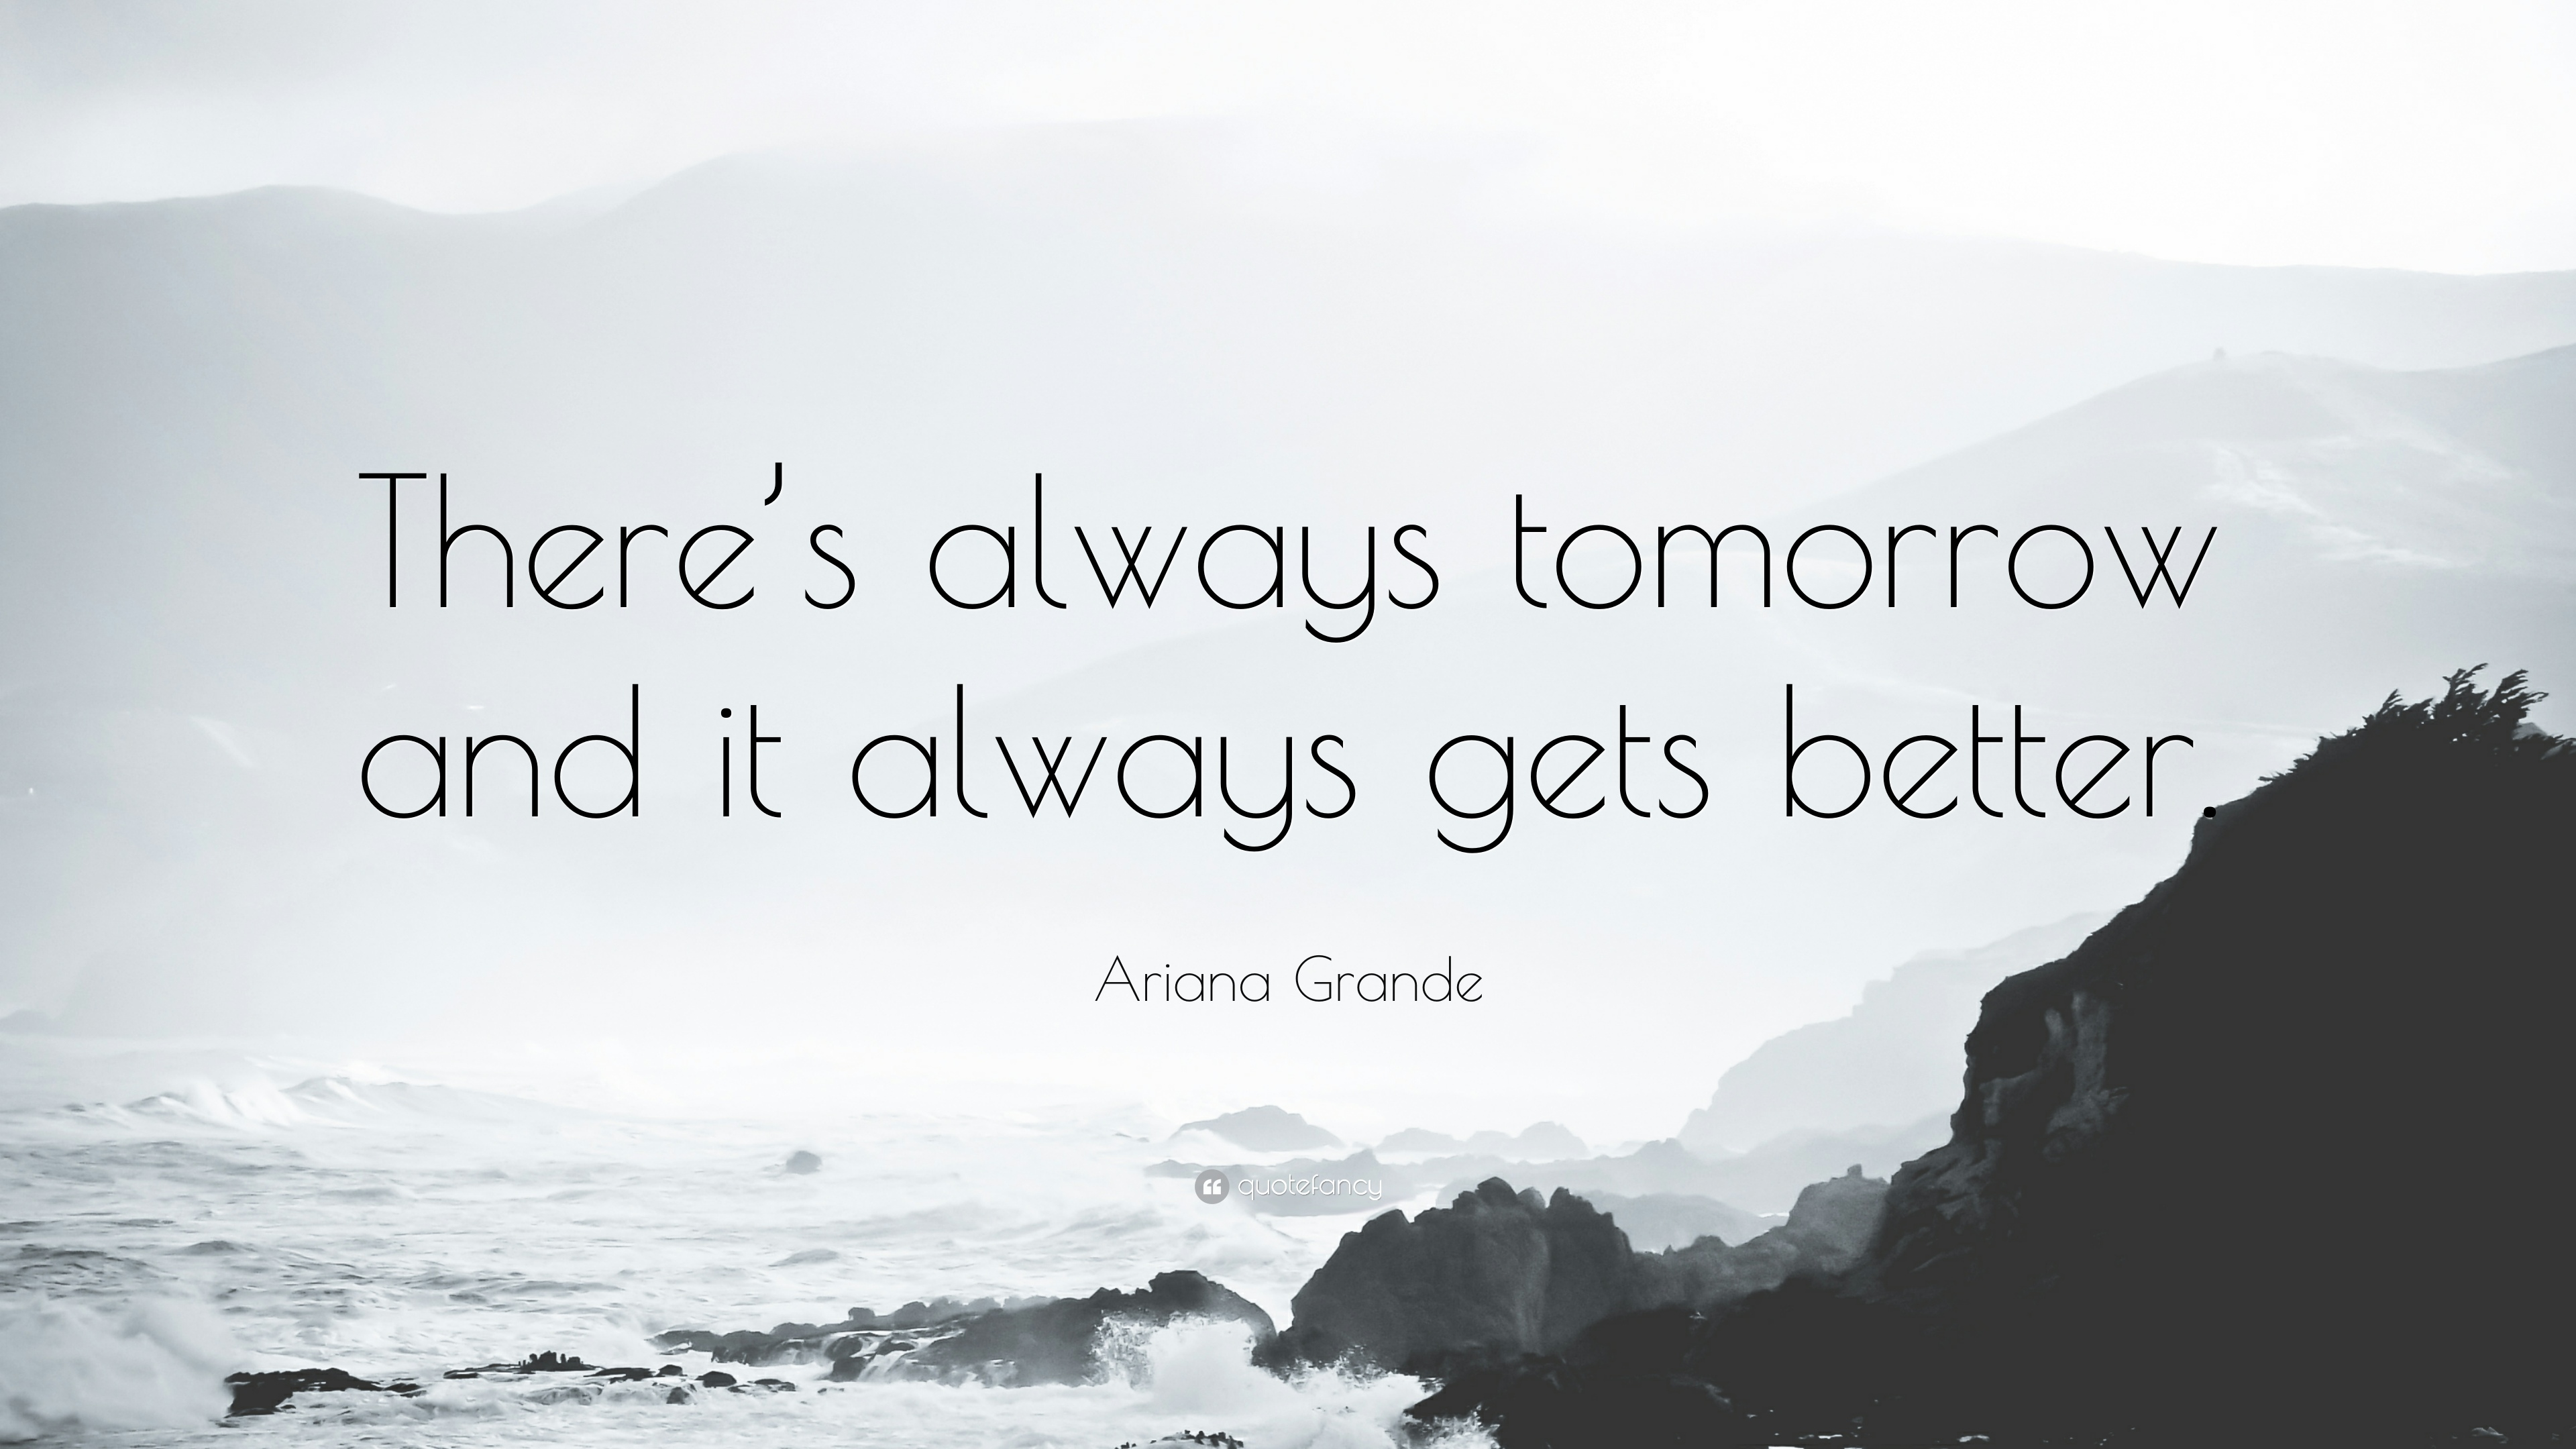 Ariana Grande Quote Theres Always Tomorrow And It Always Gets